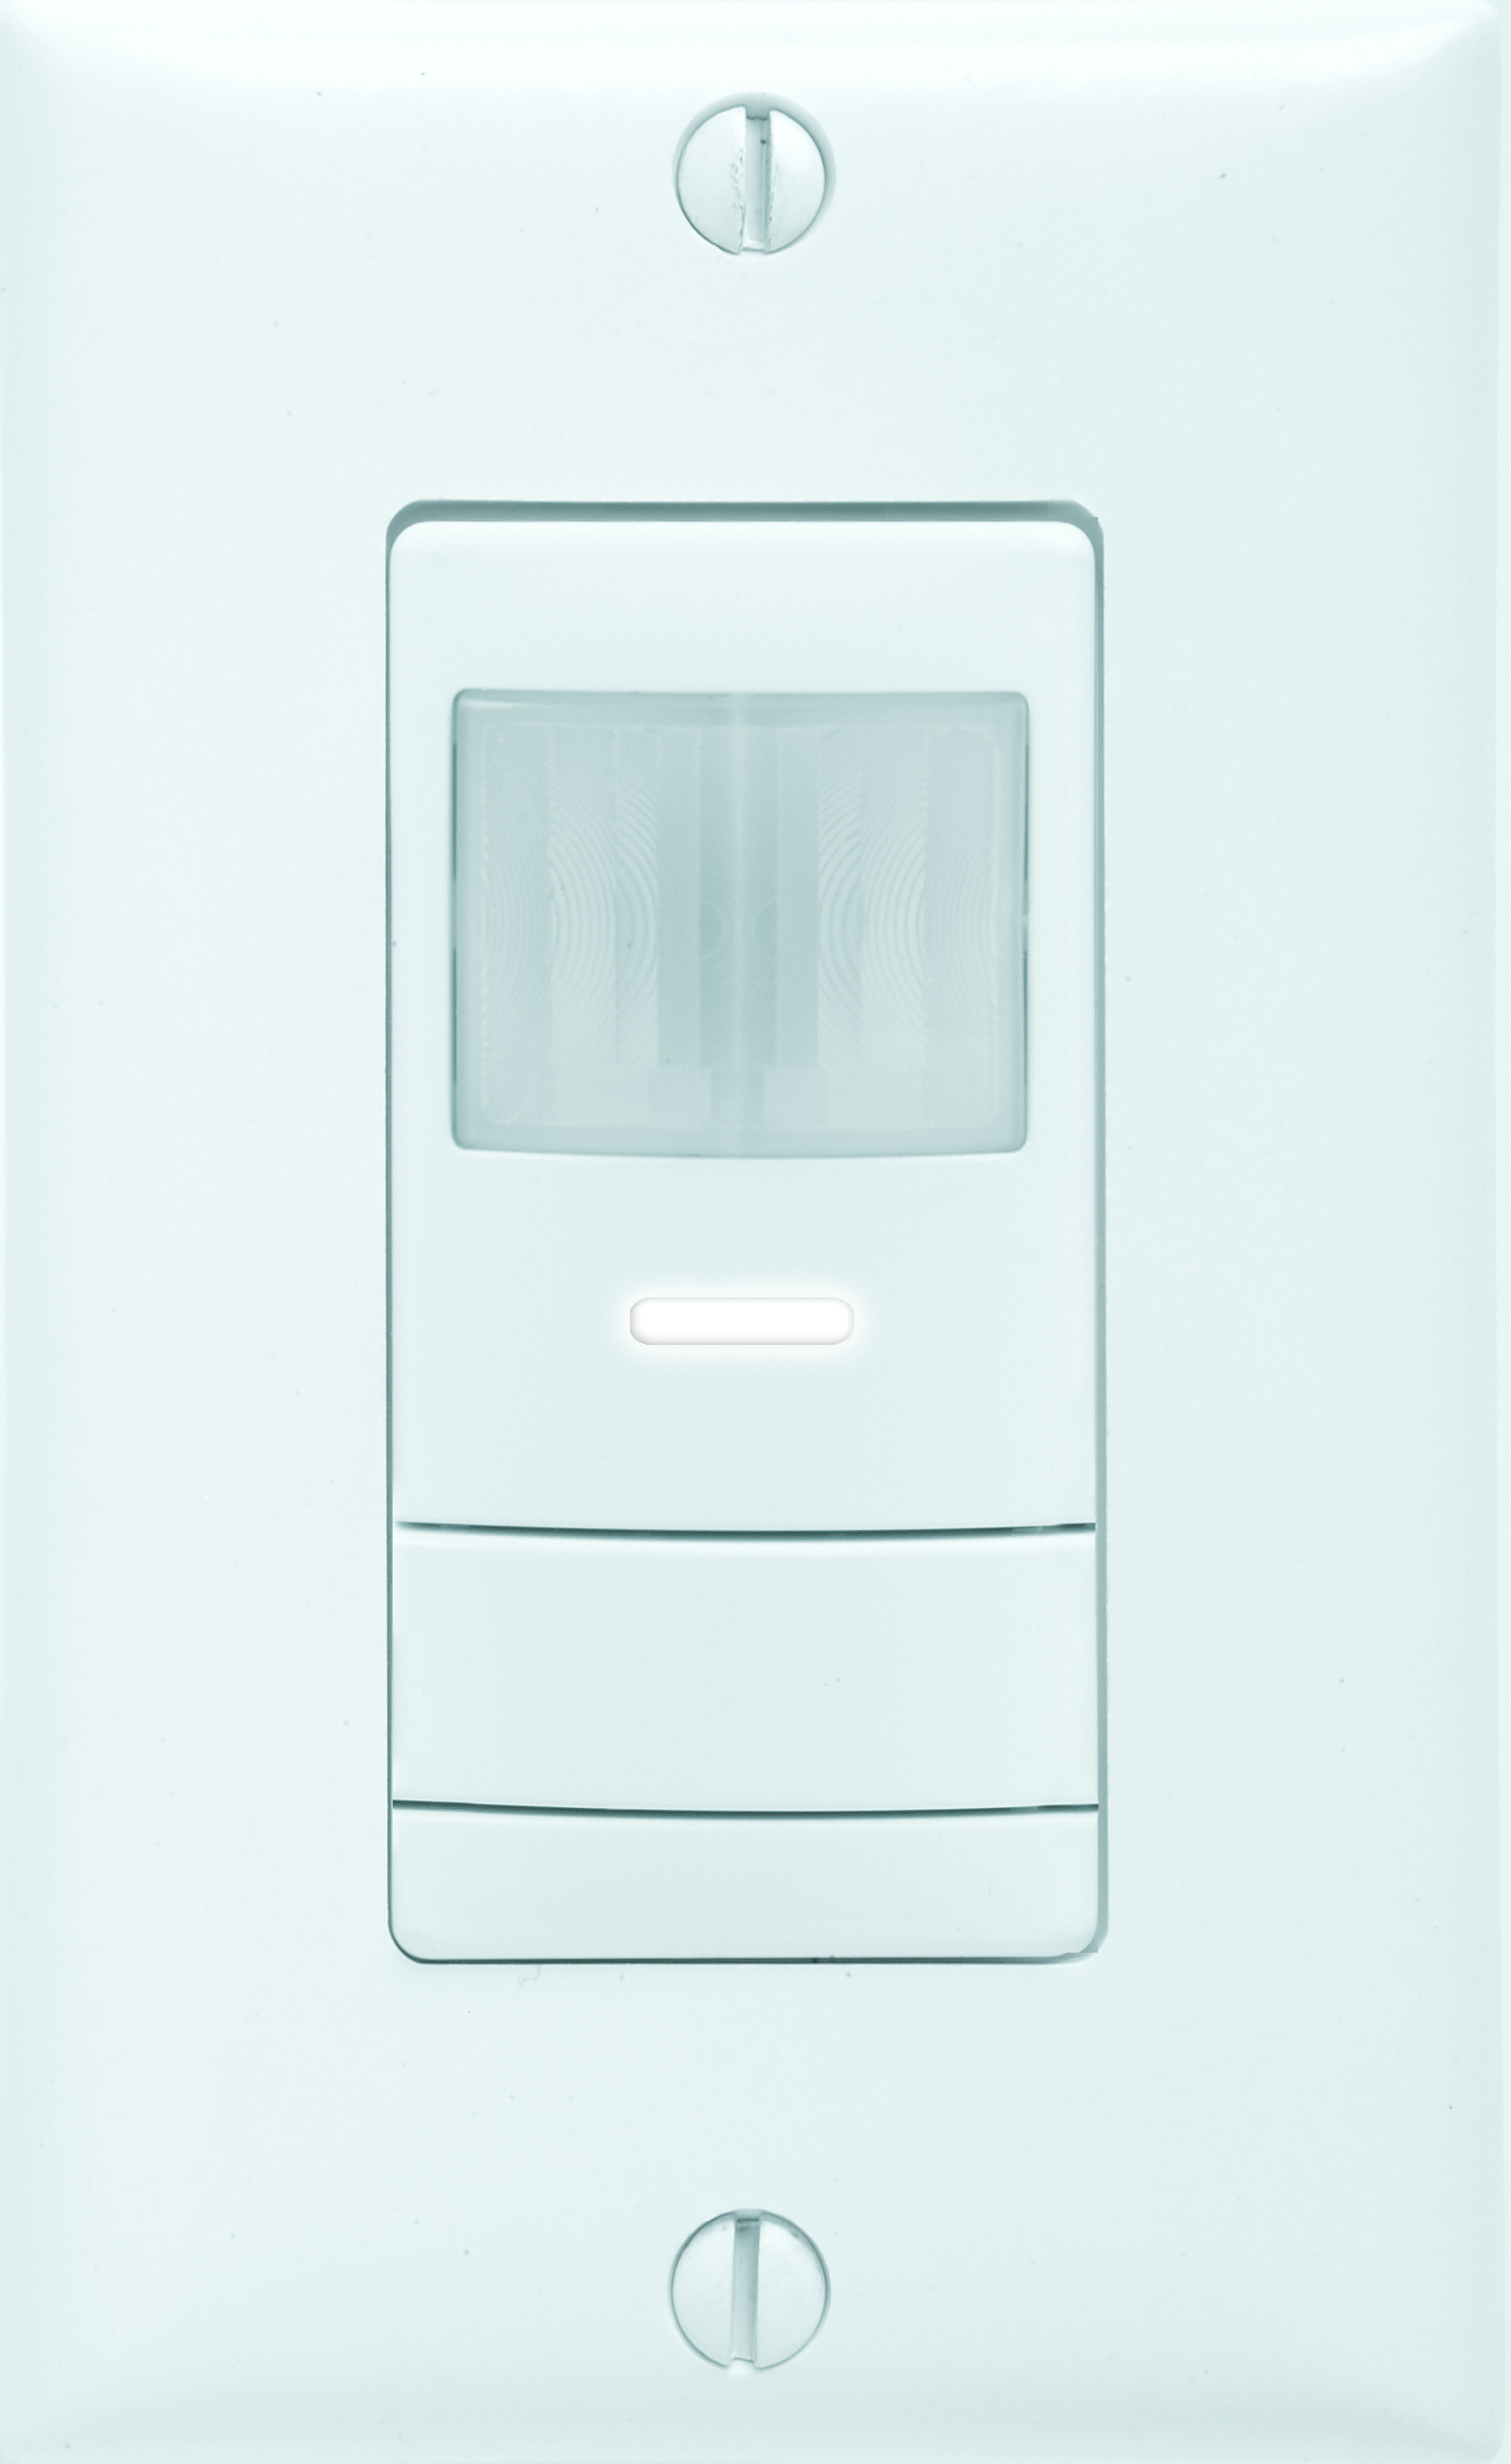 LITH WSXPDT2PWH OCCUPANCY SENSOR Wall Switch Sensor - Dual Technology (PDT), 2-Pole: w/ Universal Neutral/Ground Wiring, White